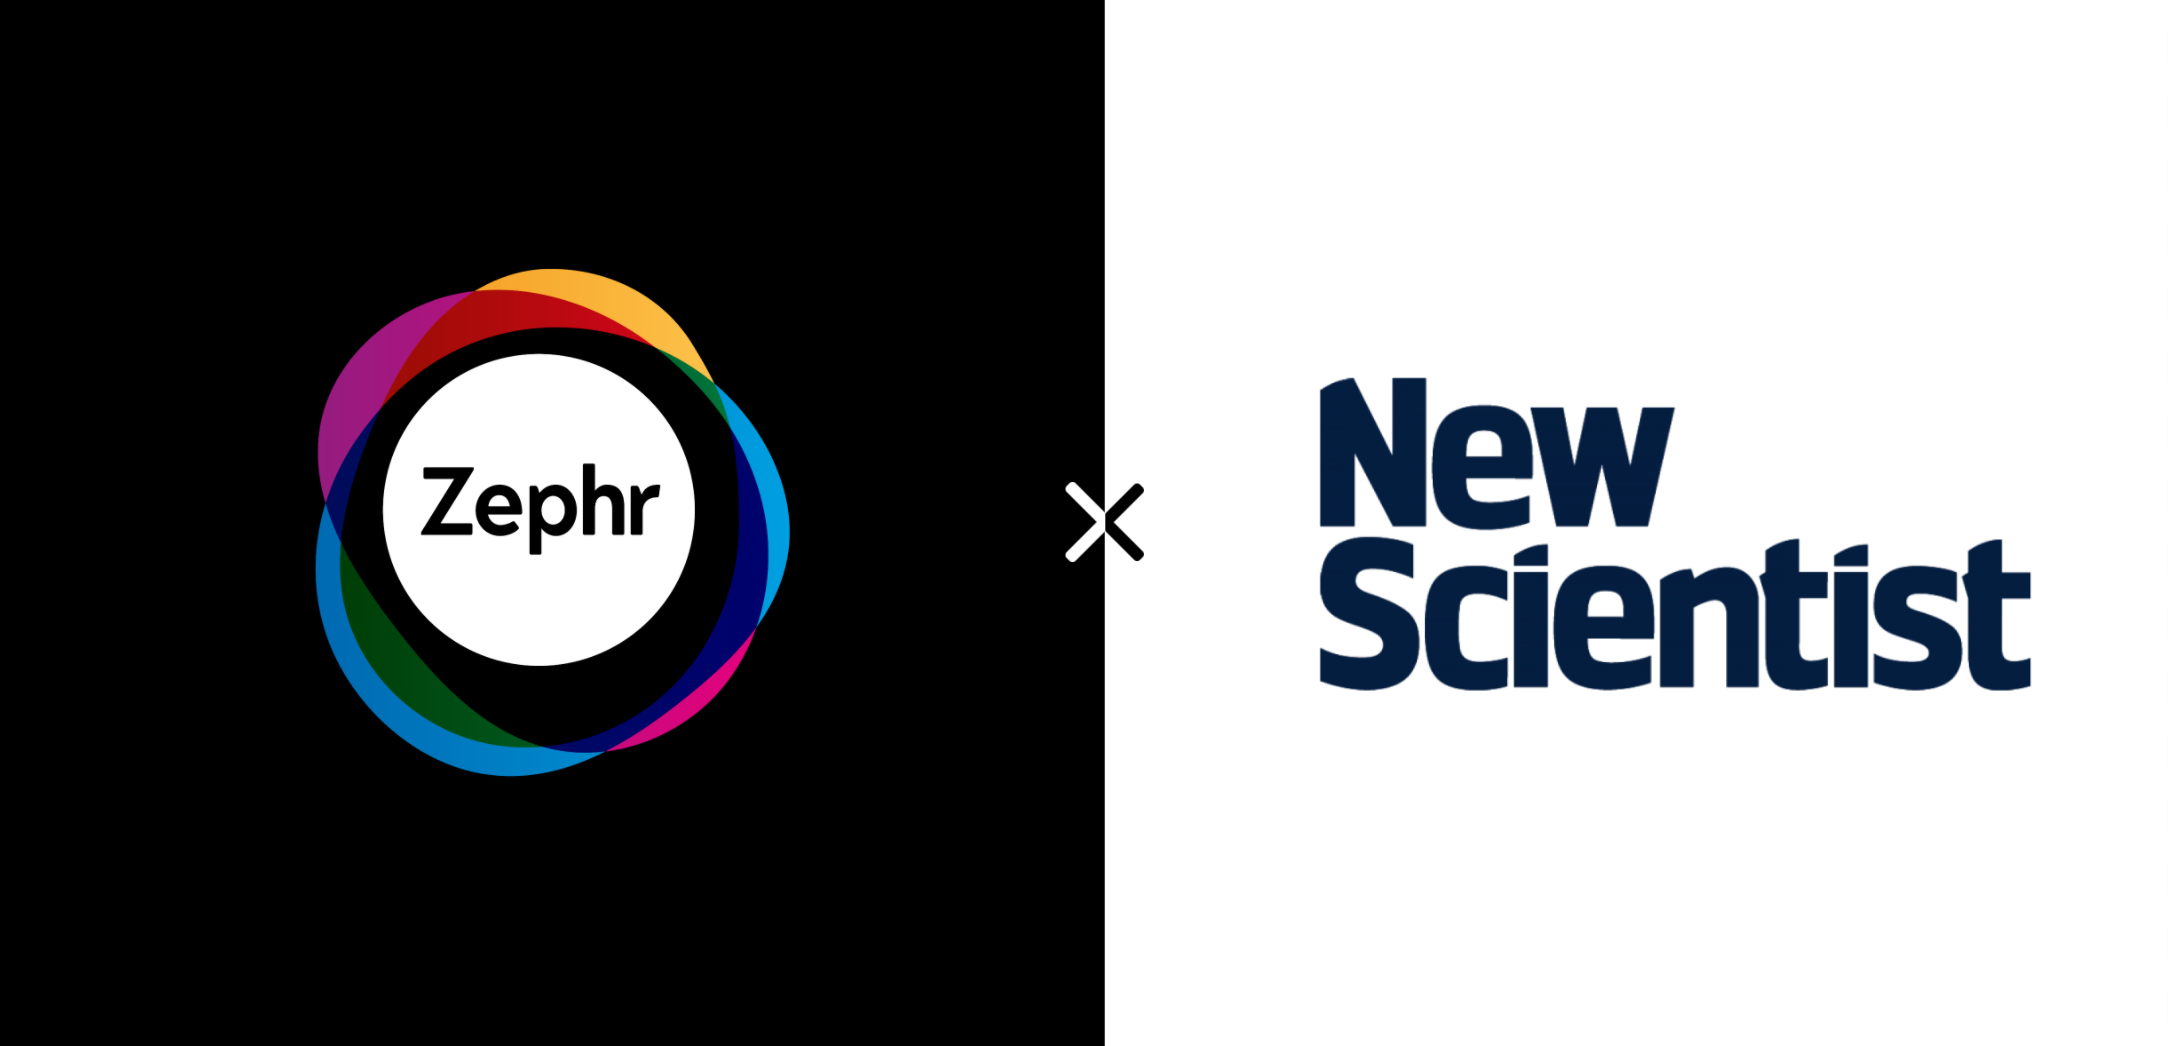 New Scientist and Zephr Partnership